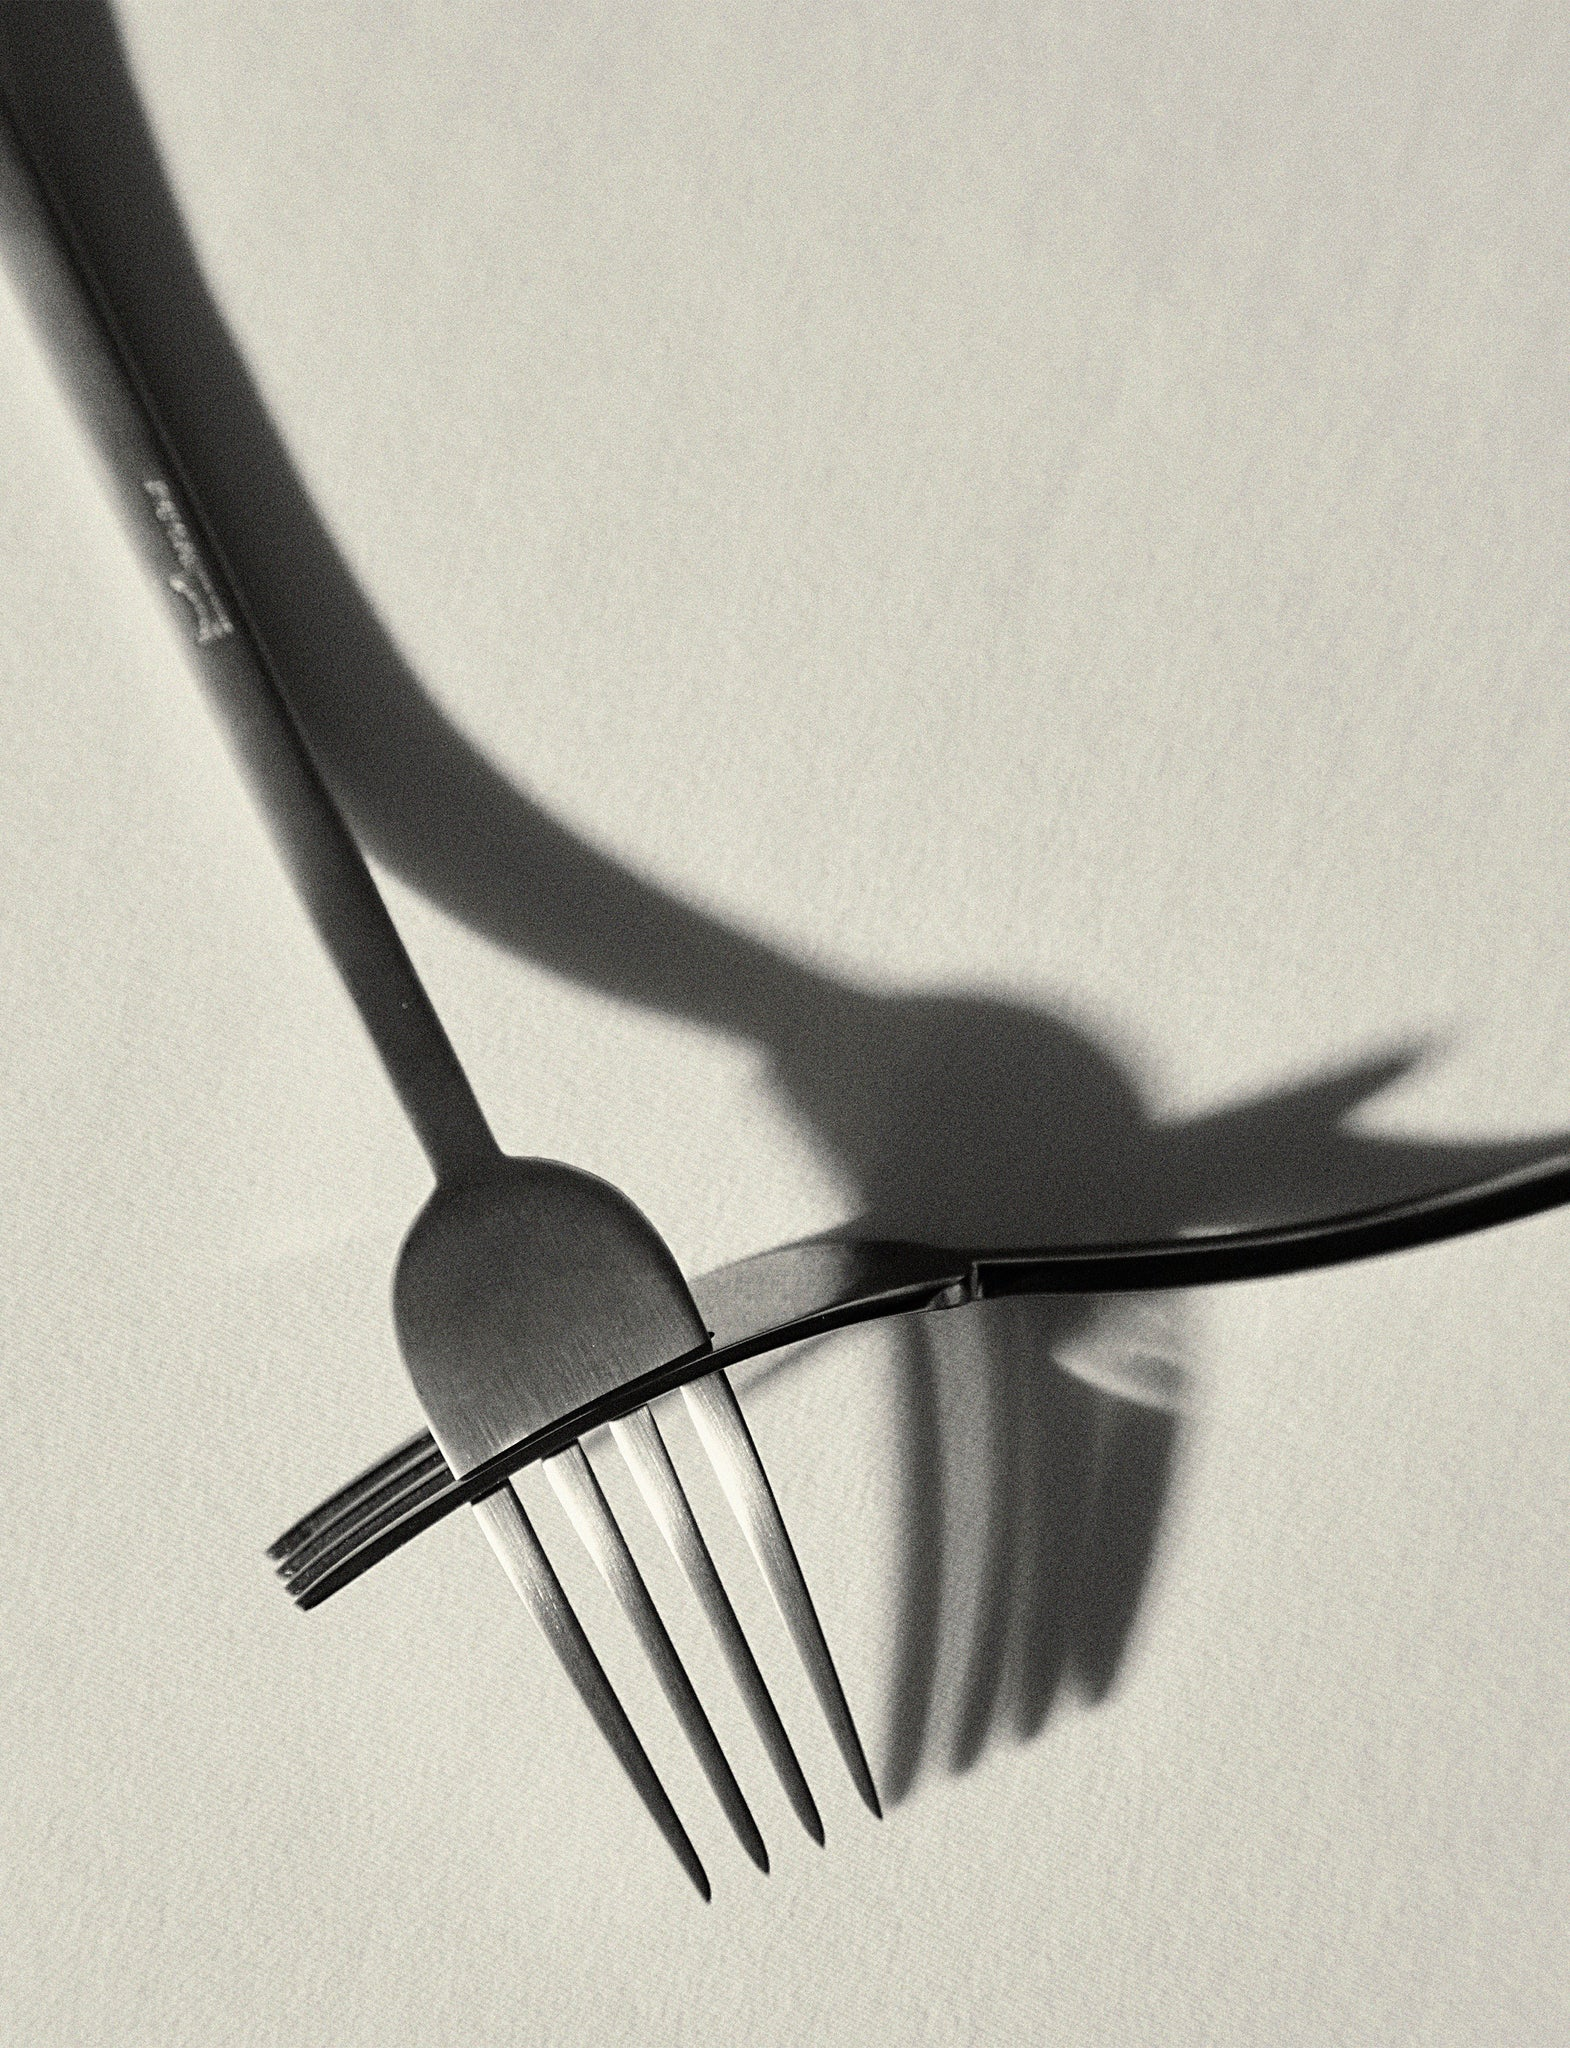 Merpa Flatware at The Line